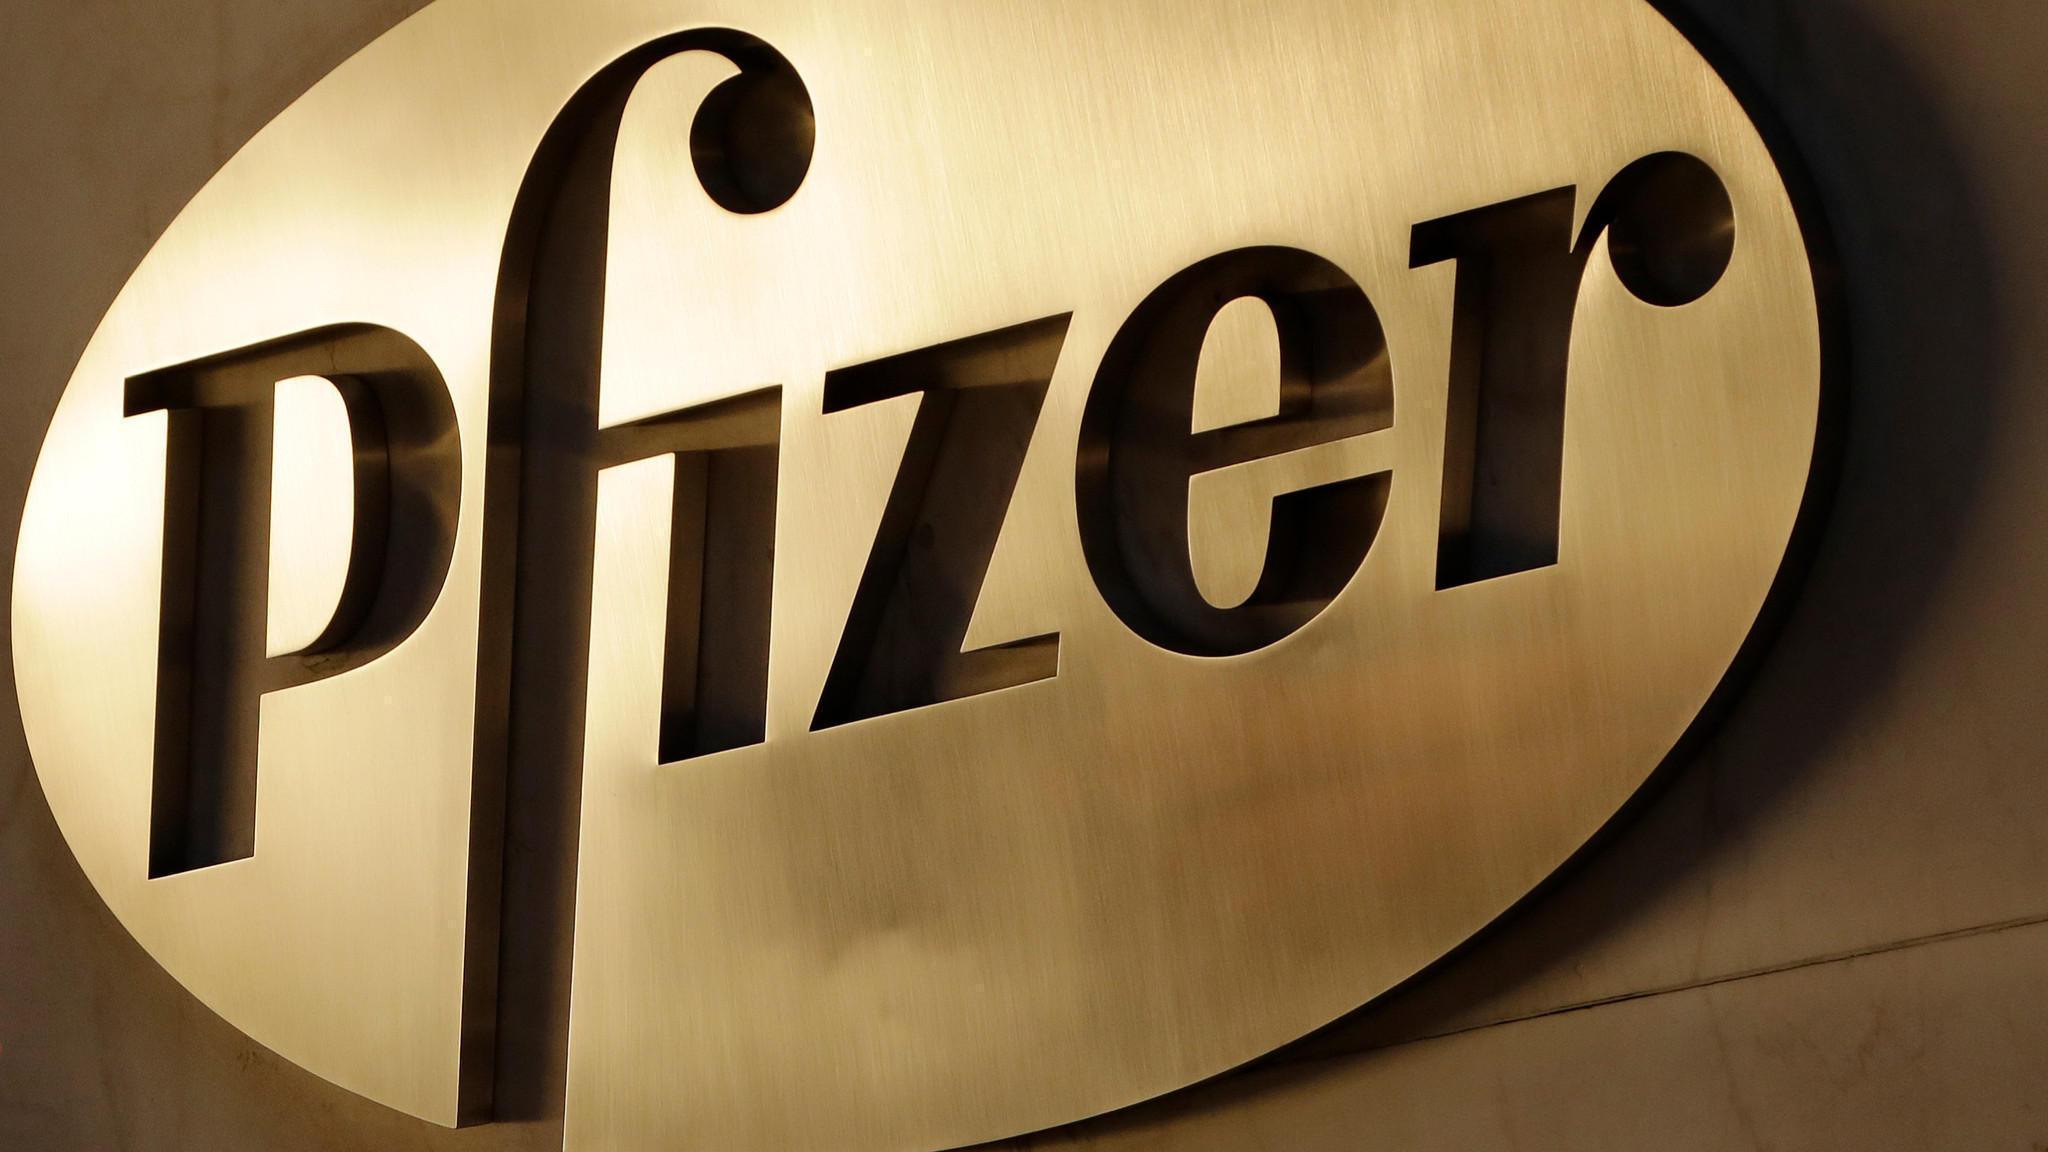 Pfizer Buying Anacor Pharmaceuticals In $5.2-billion Deal